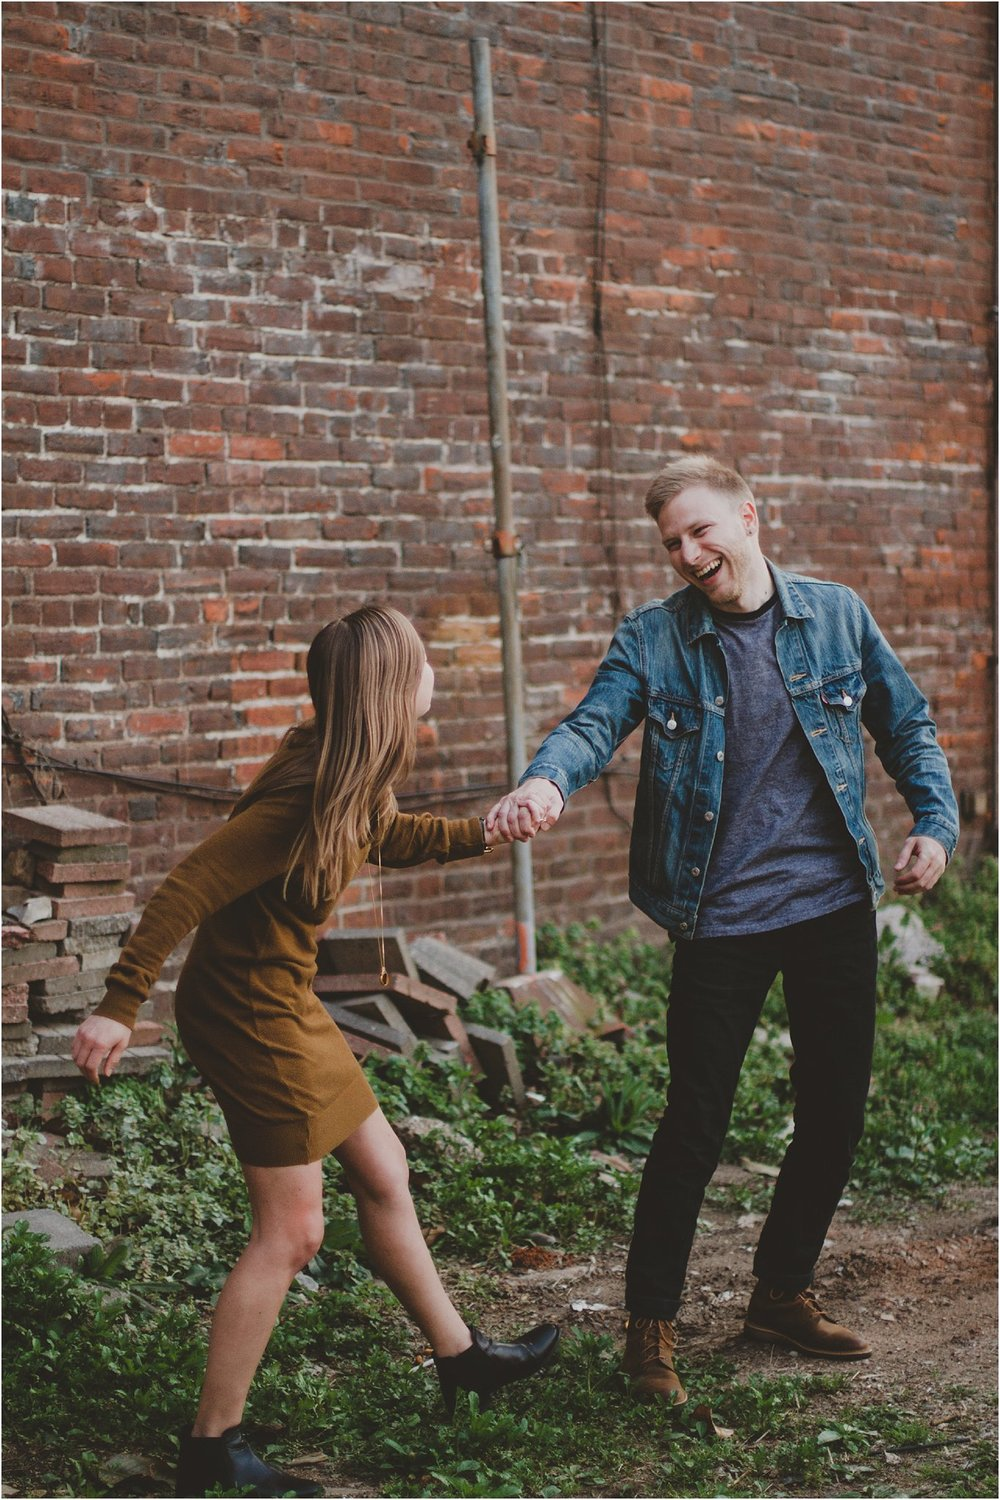 PattengalePhotography_Andrew&Allison_Soulard_SaintLouis_Engagement_Urban_Hipster_Boho_Wedding_Photographer_Missouri_Couple_PattengalePhotography__0006.jpg